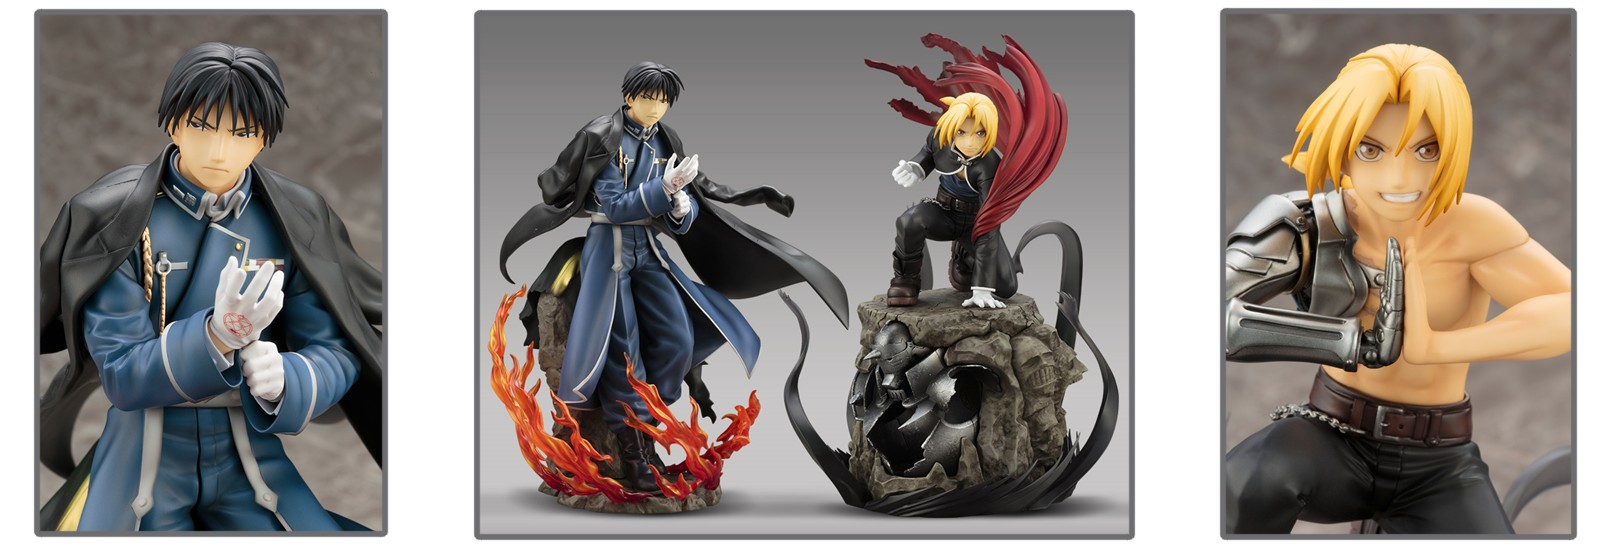 ARTFX J – Fullmetal Alchemist Brotherhood: Roy Mustang and Edward Elric